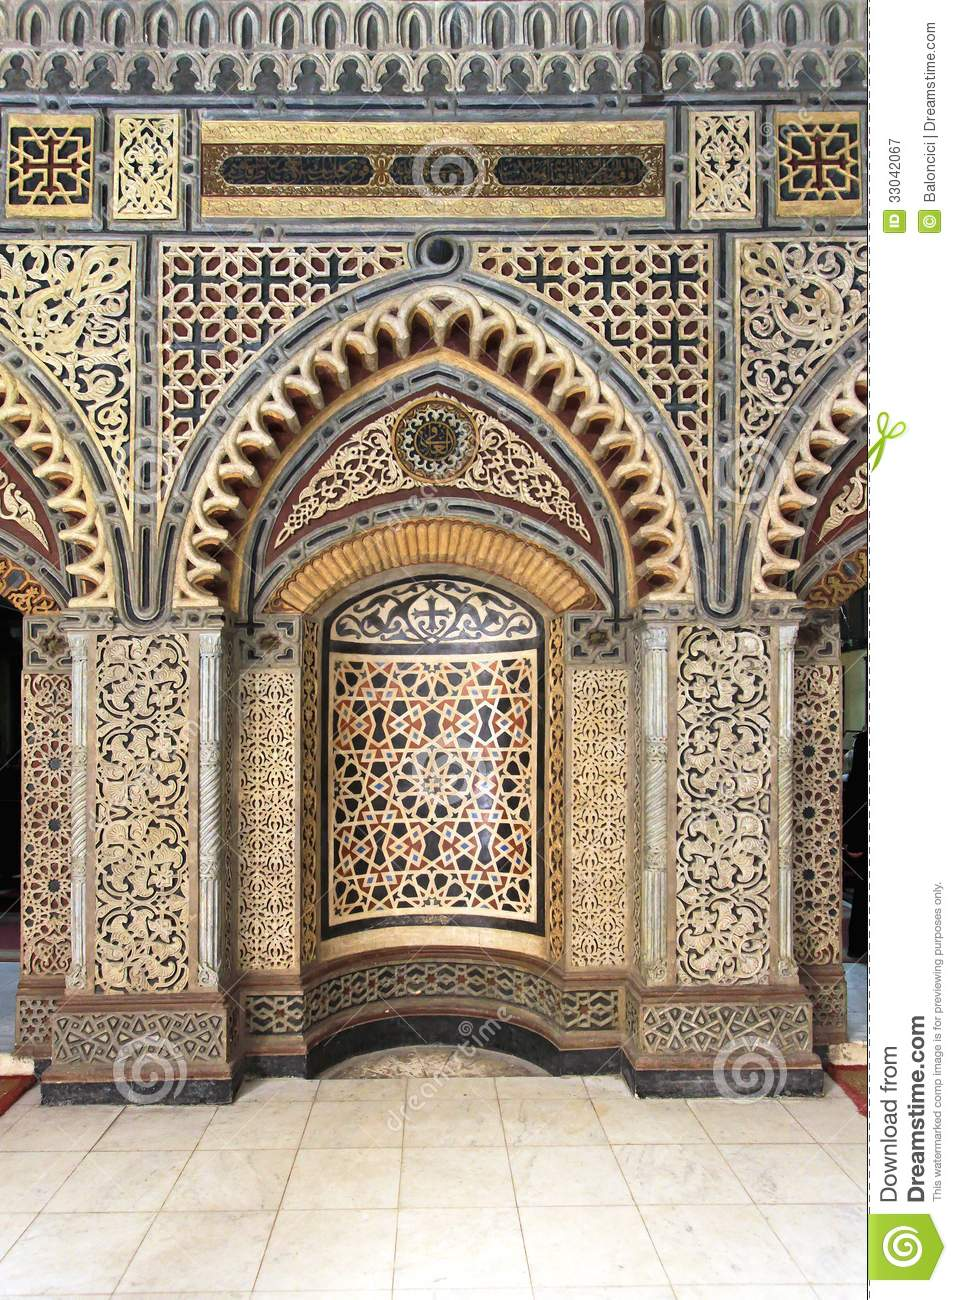 Traditional Islamic pattern decoration at Mihrab in Cairo.